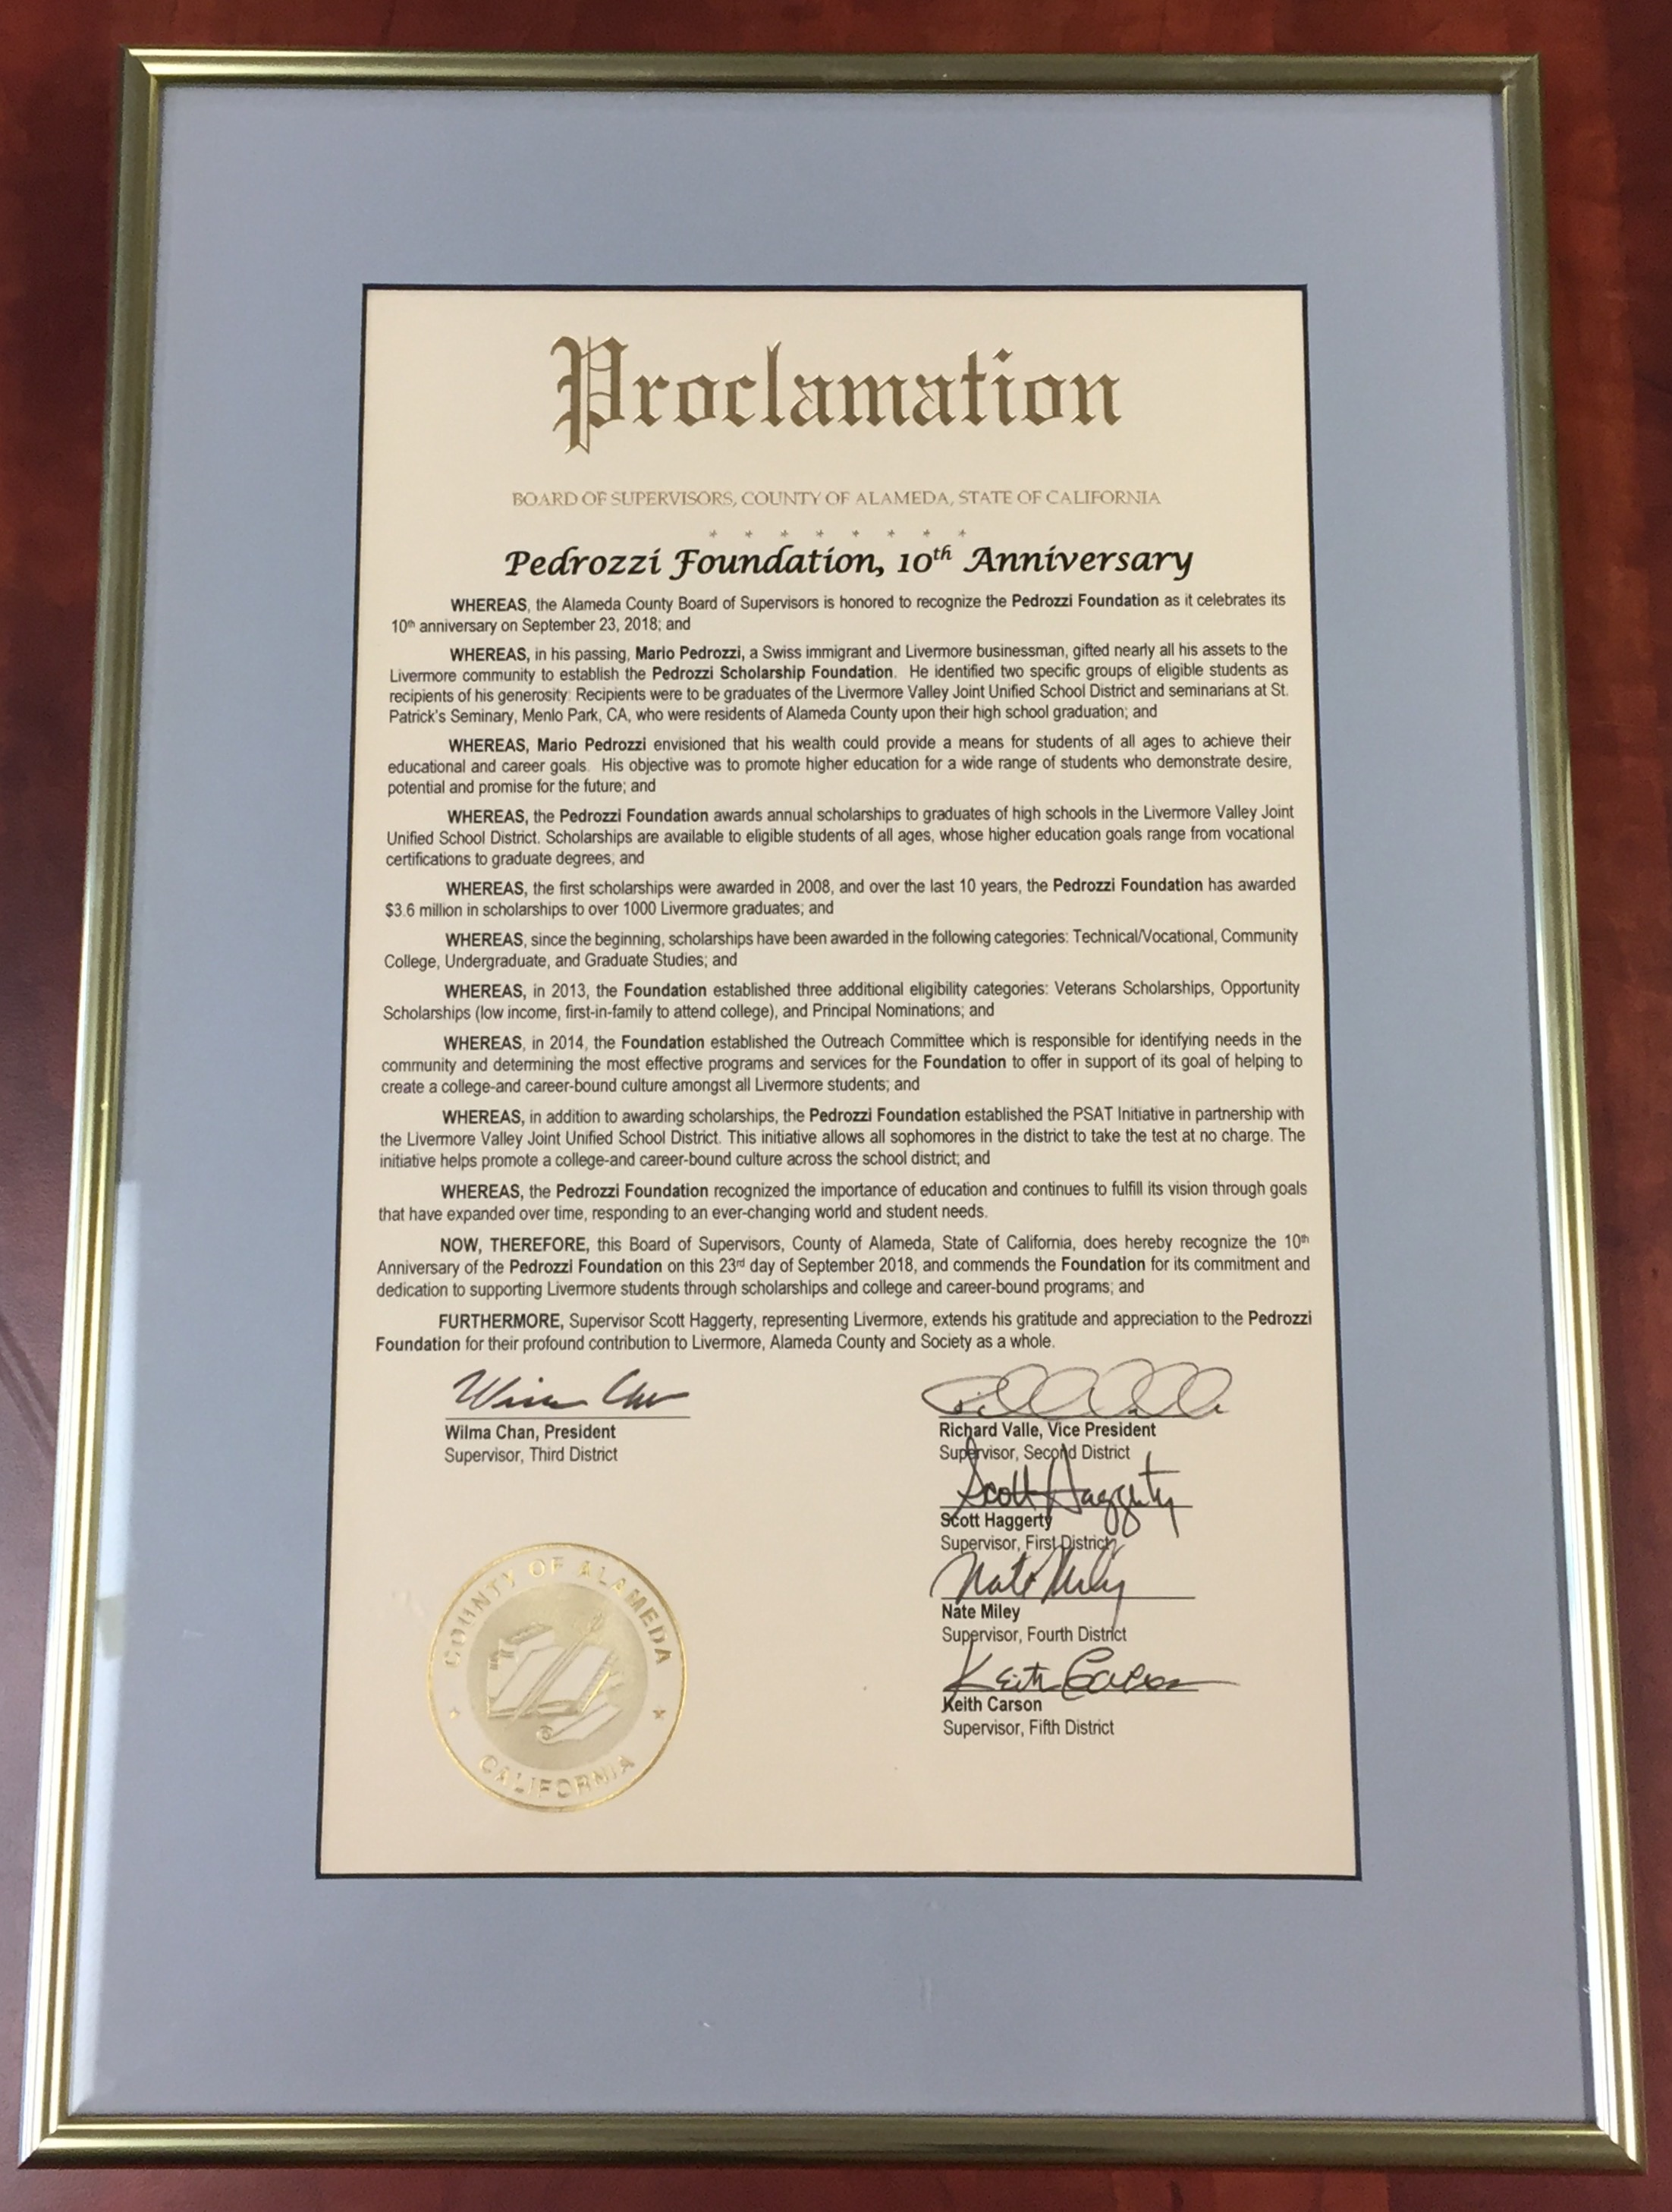 2018 Proclamation of the Alameda County Board of Supervisors